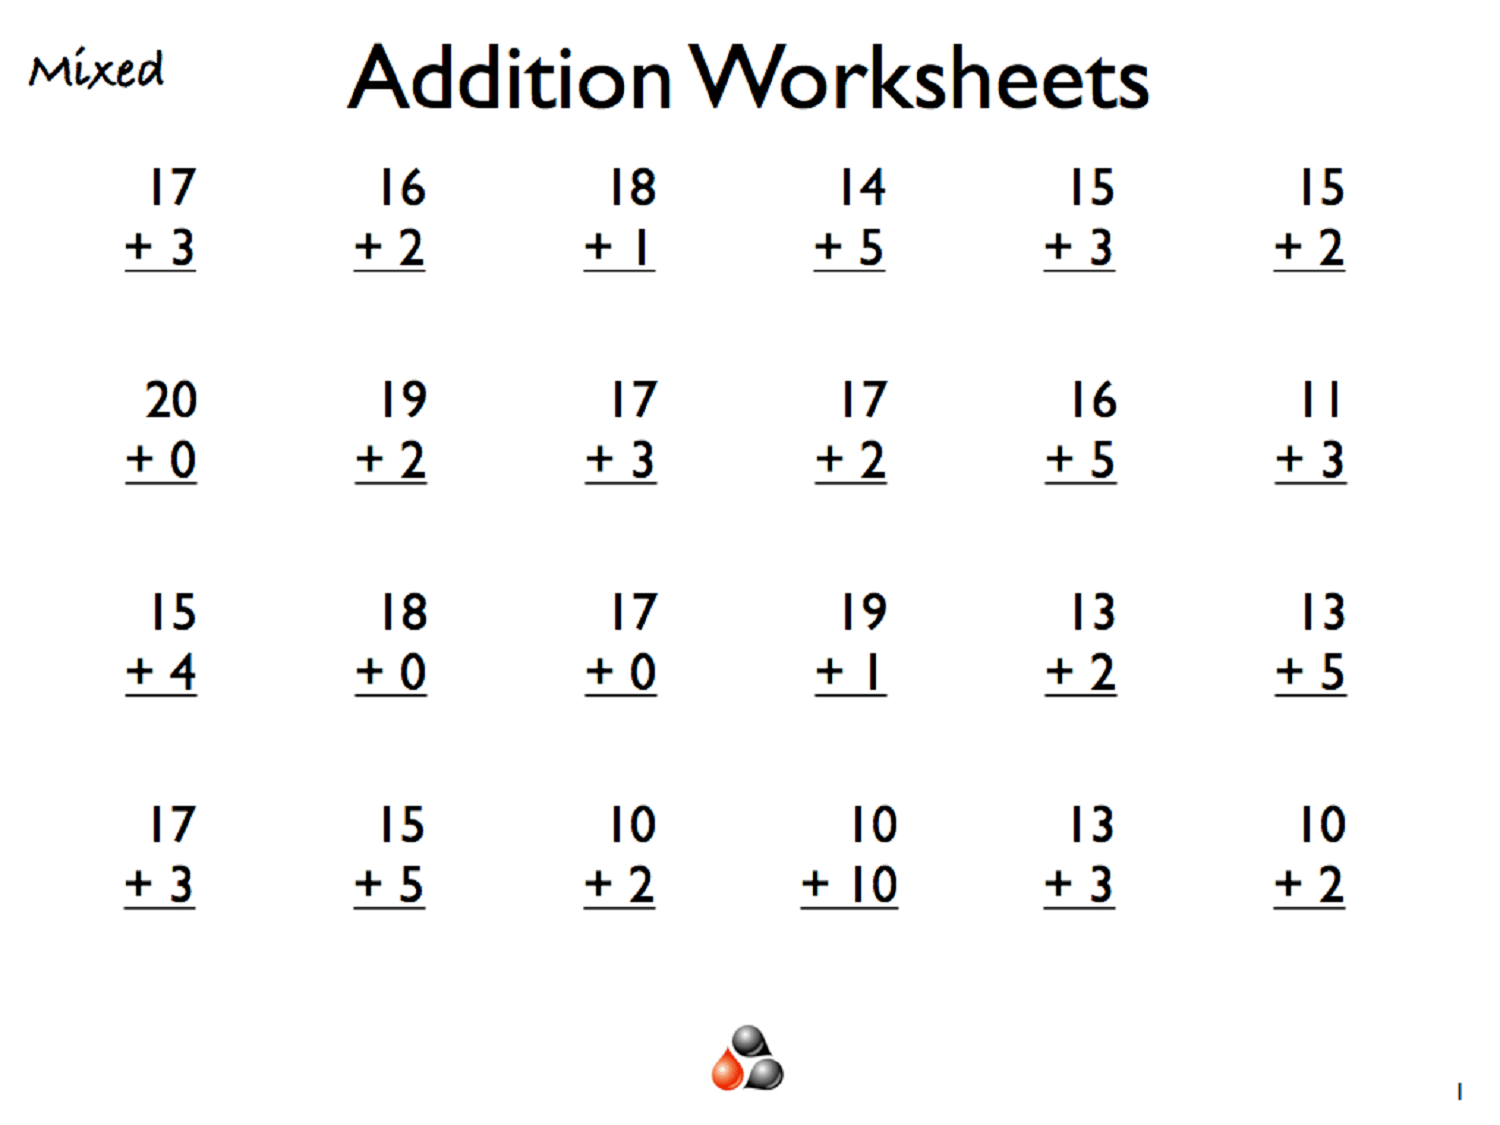 Addition For Worksheets For Grade 1 Is Helpful Educative Media